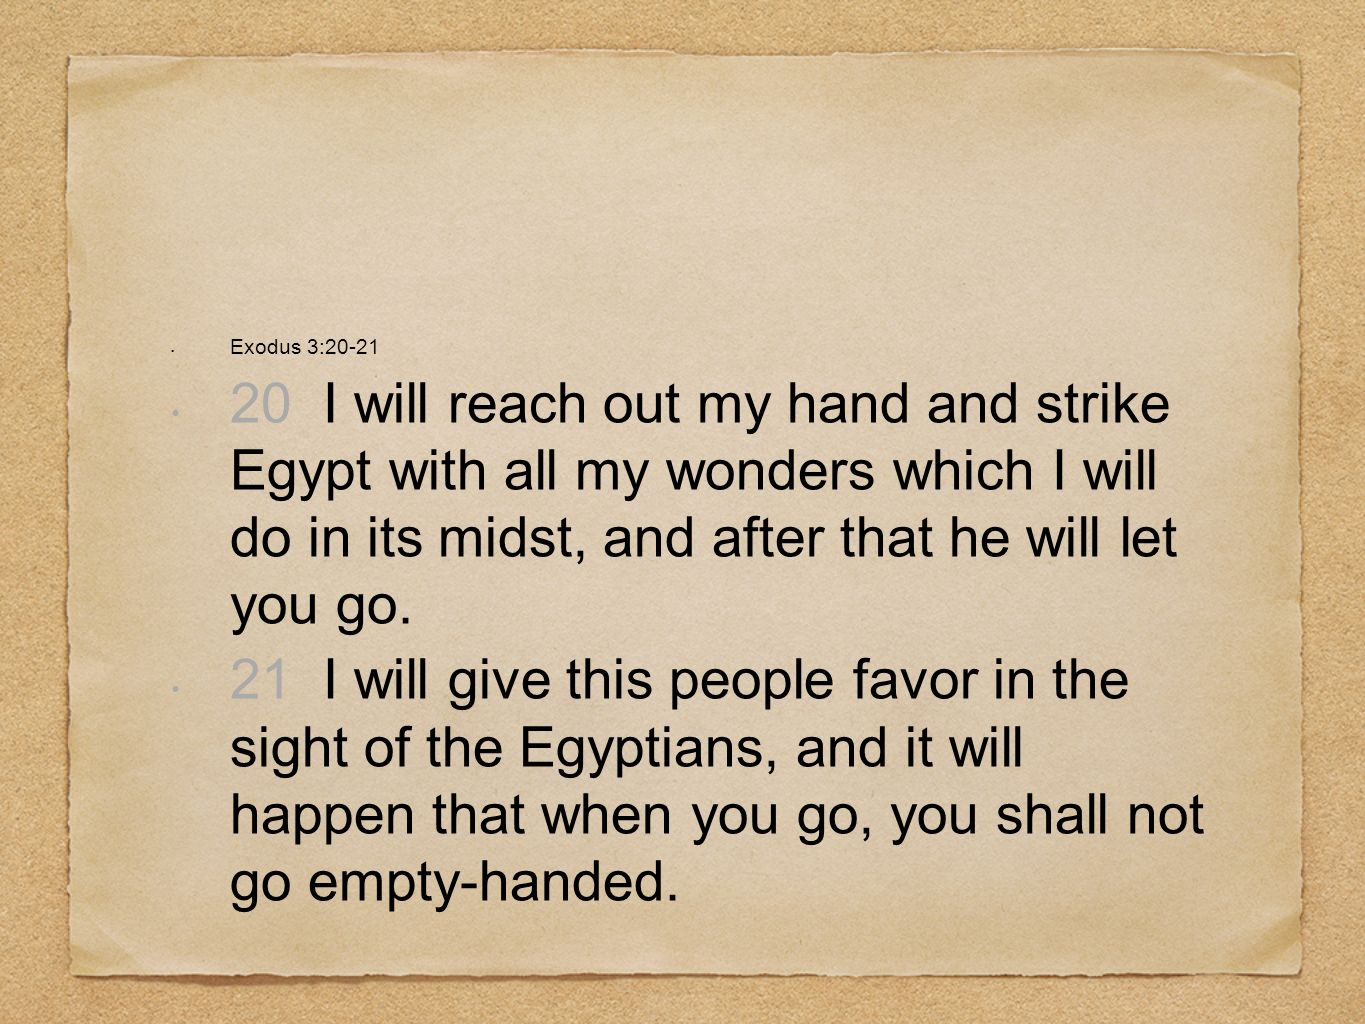 Exodus 3:20-2120 I will reach out my hand and strike Egypt with all my wonders which I will do in its midst, and after that he will let you go.